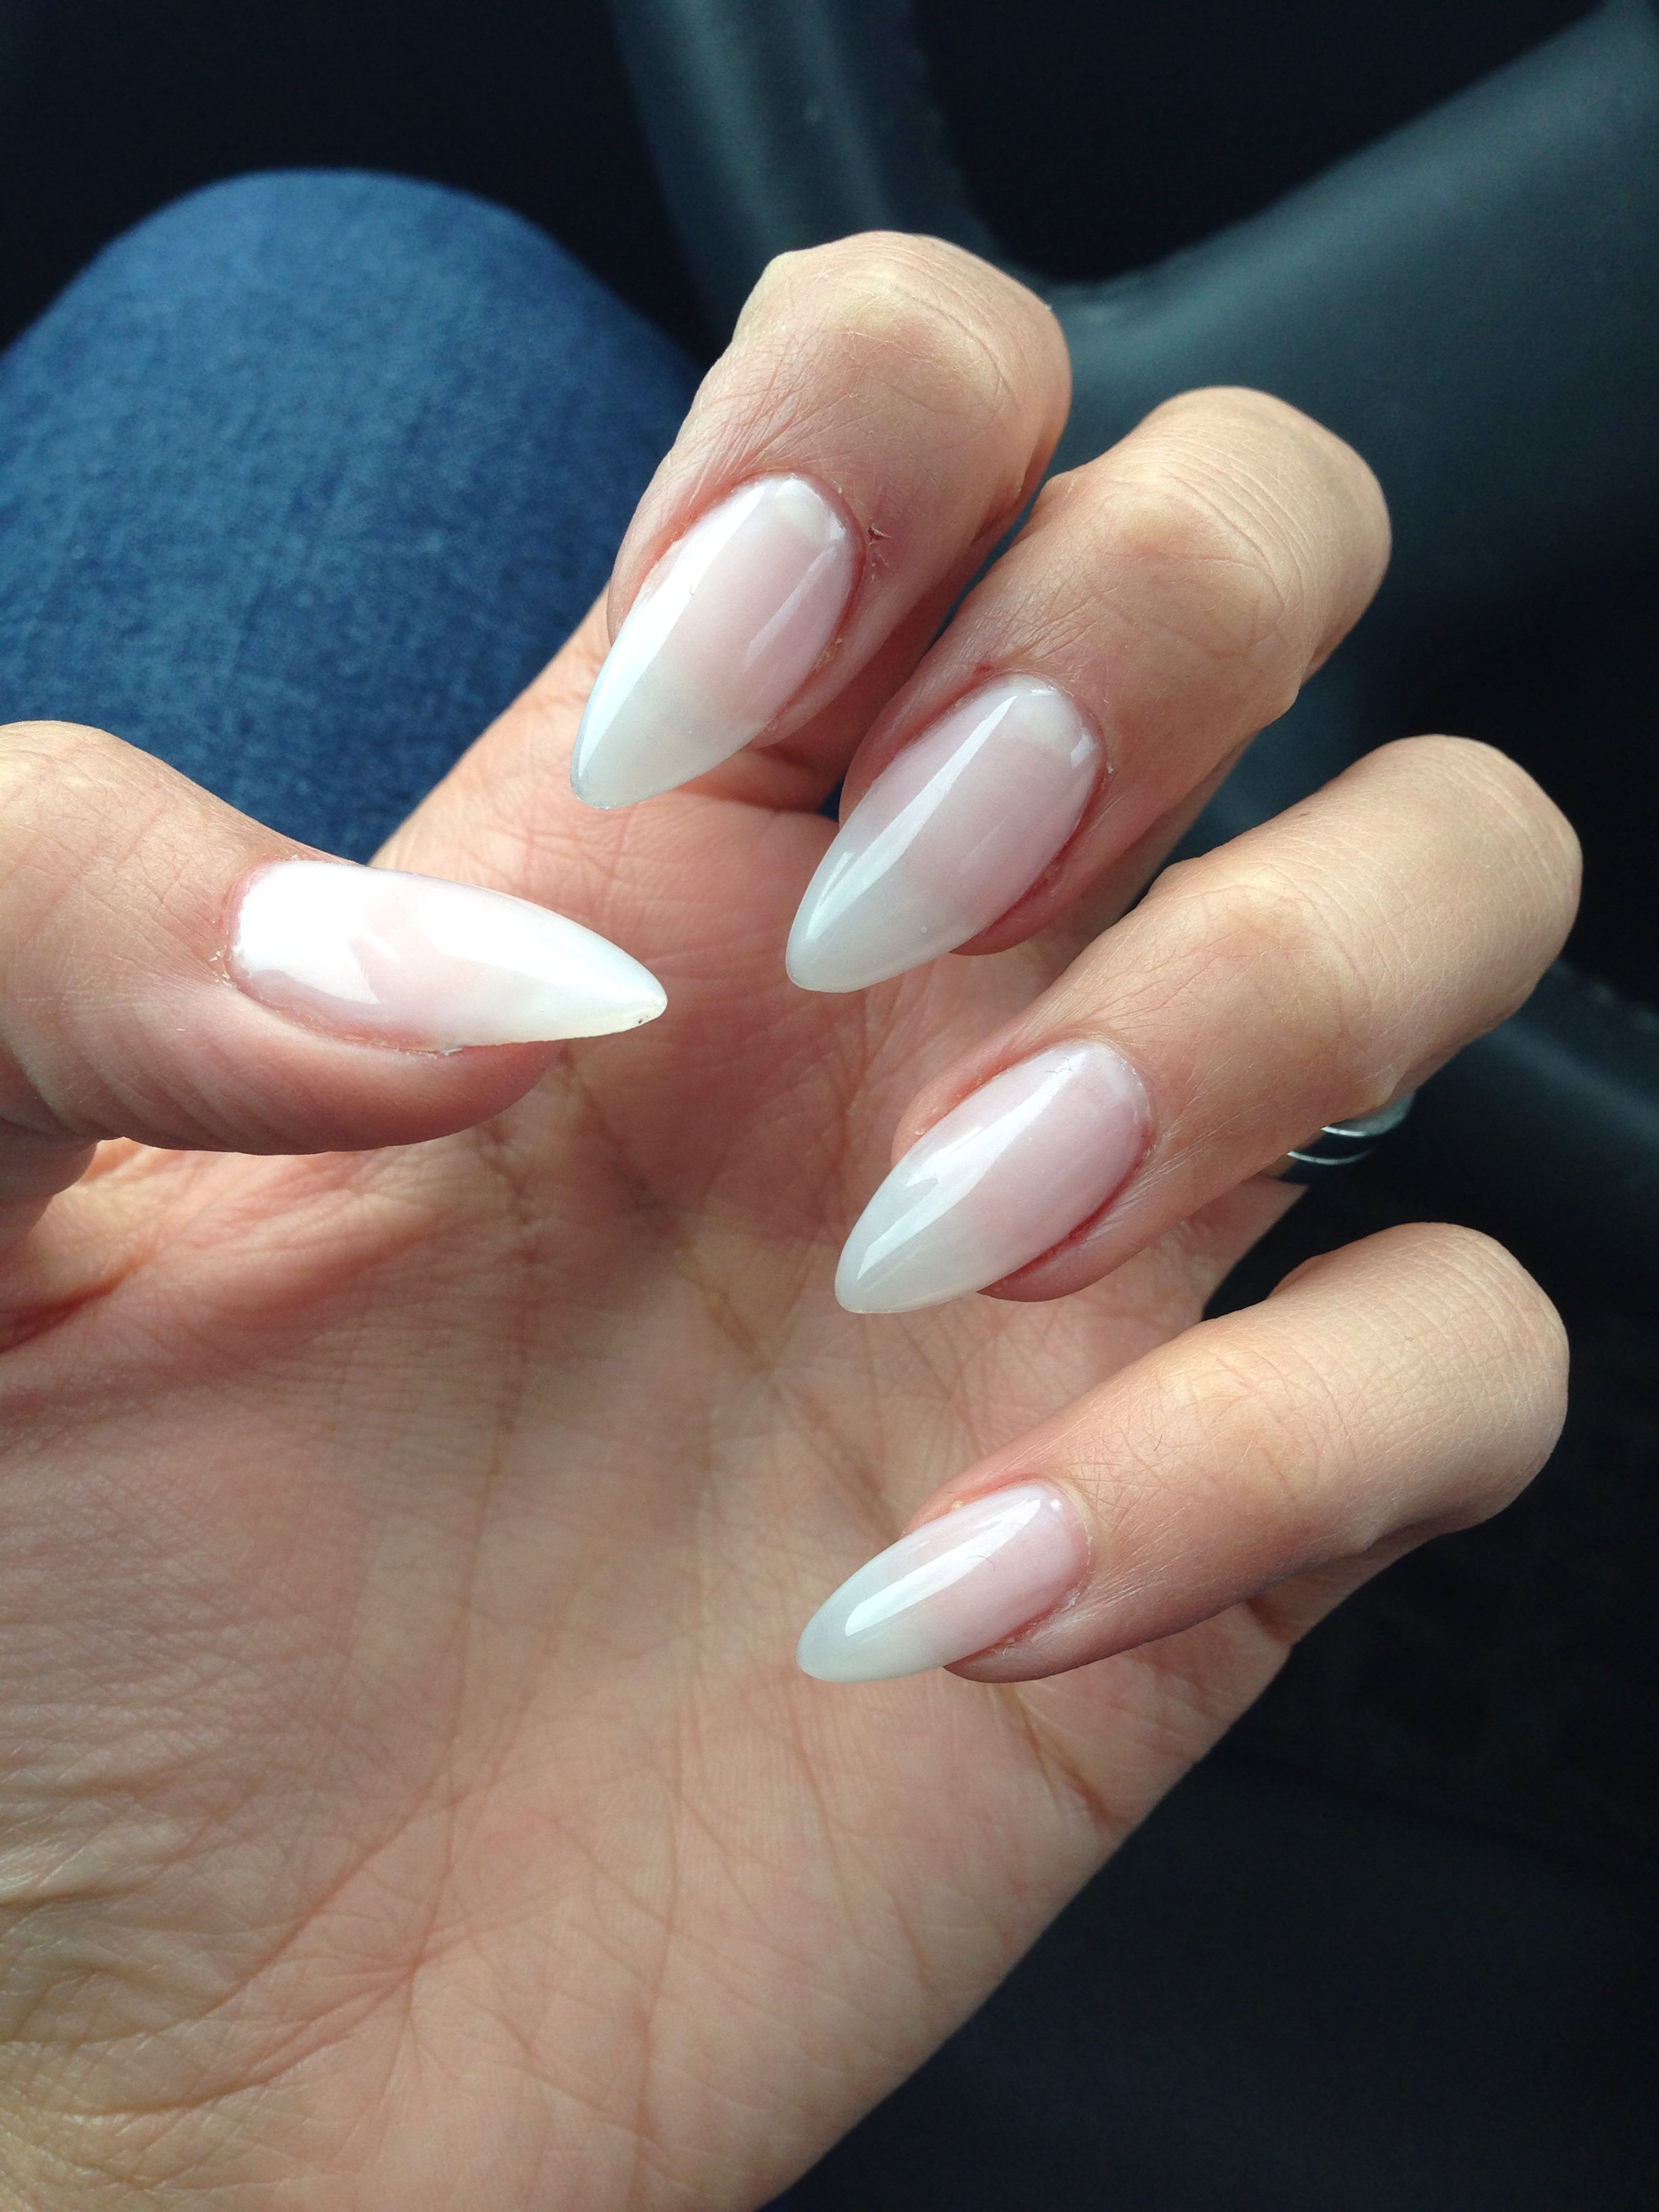 Natural looking gel almond nails | Nail design ideas ...